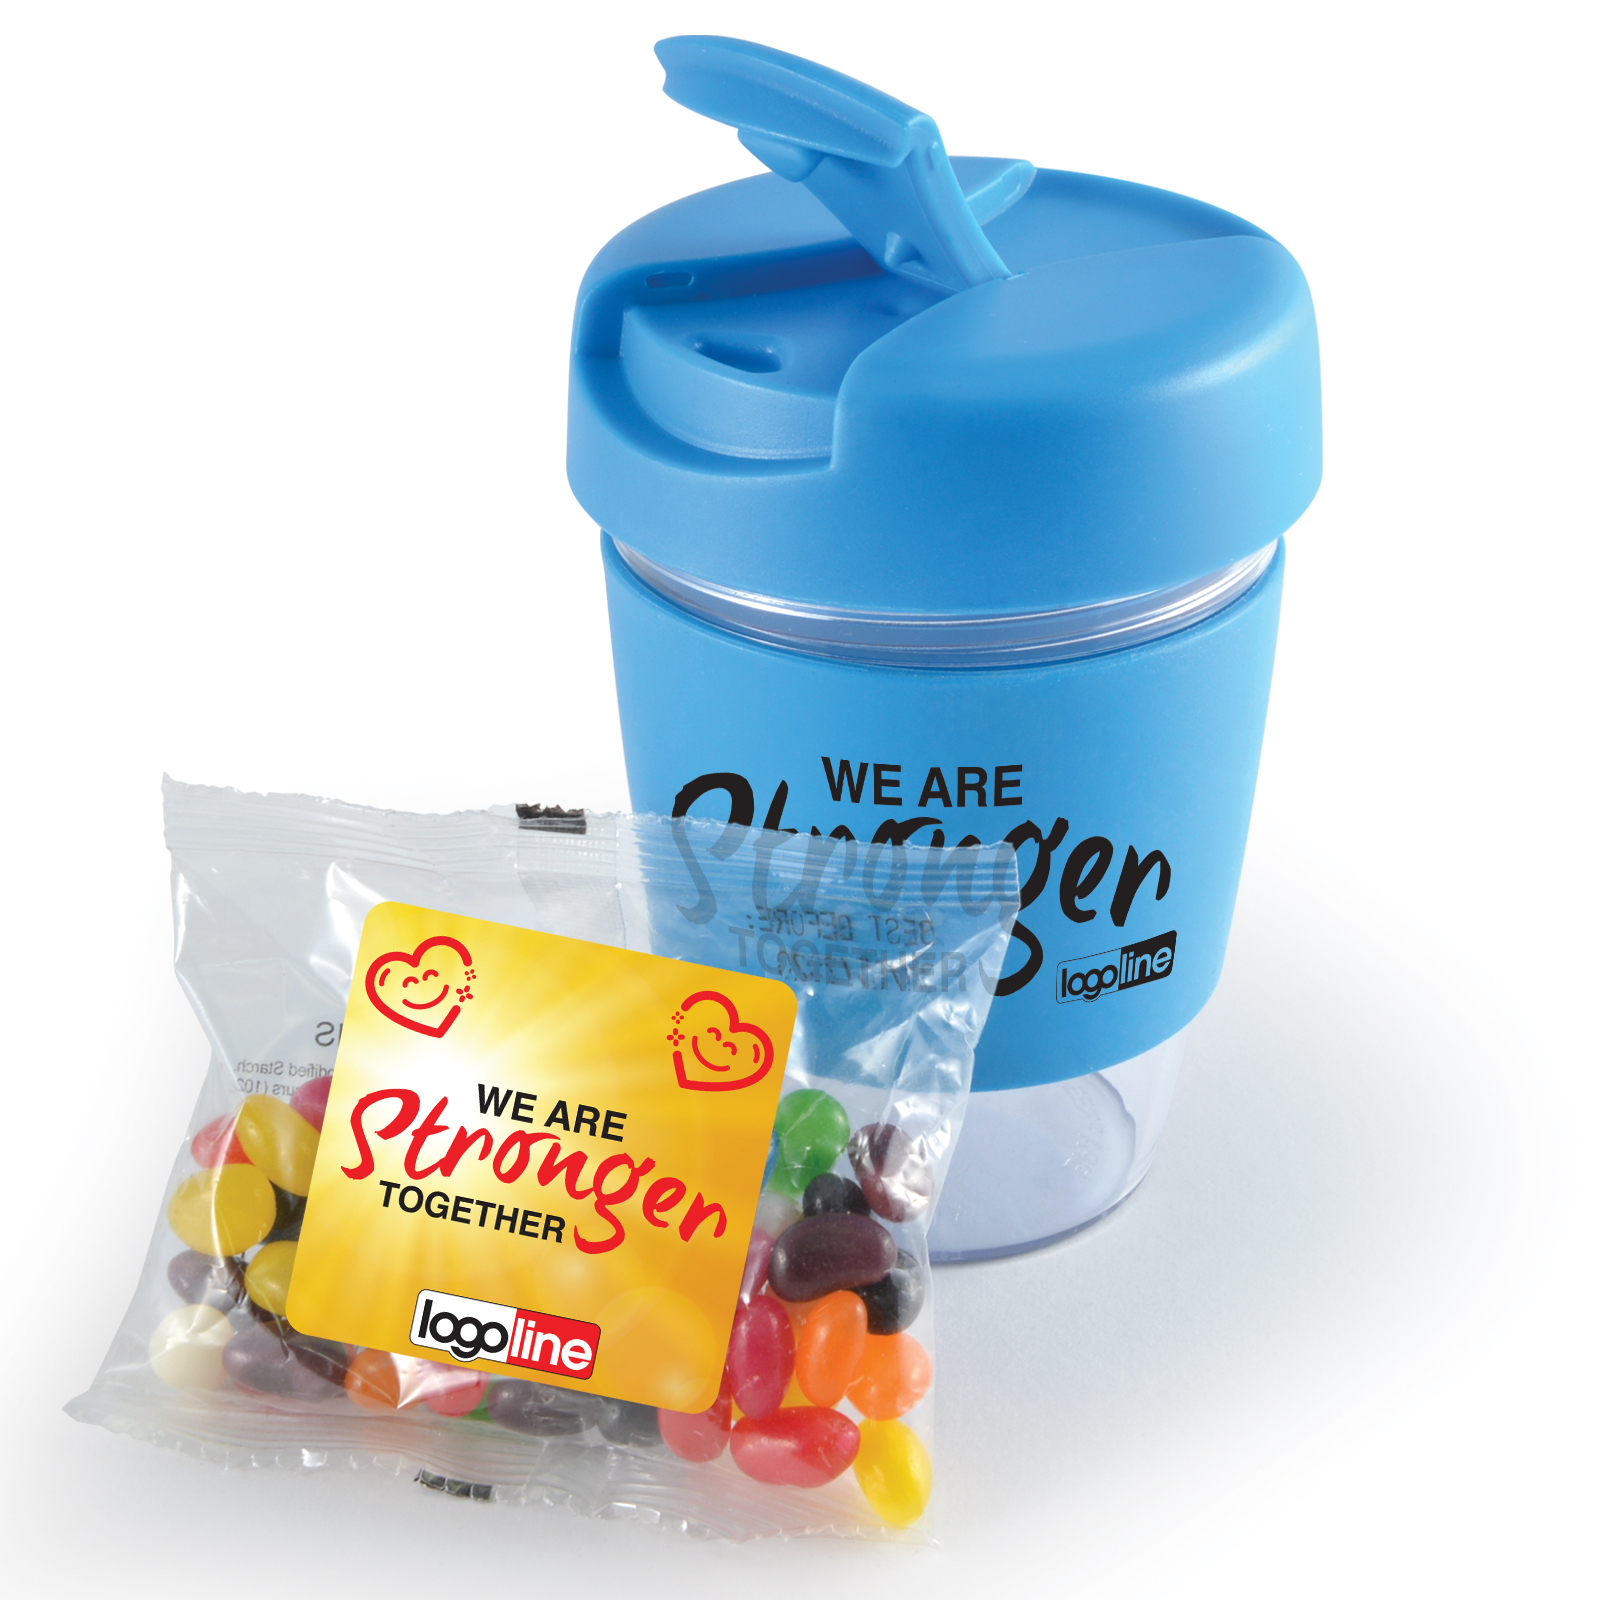 Promotional Product Kick Coffee Cup with Jelly Beans